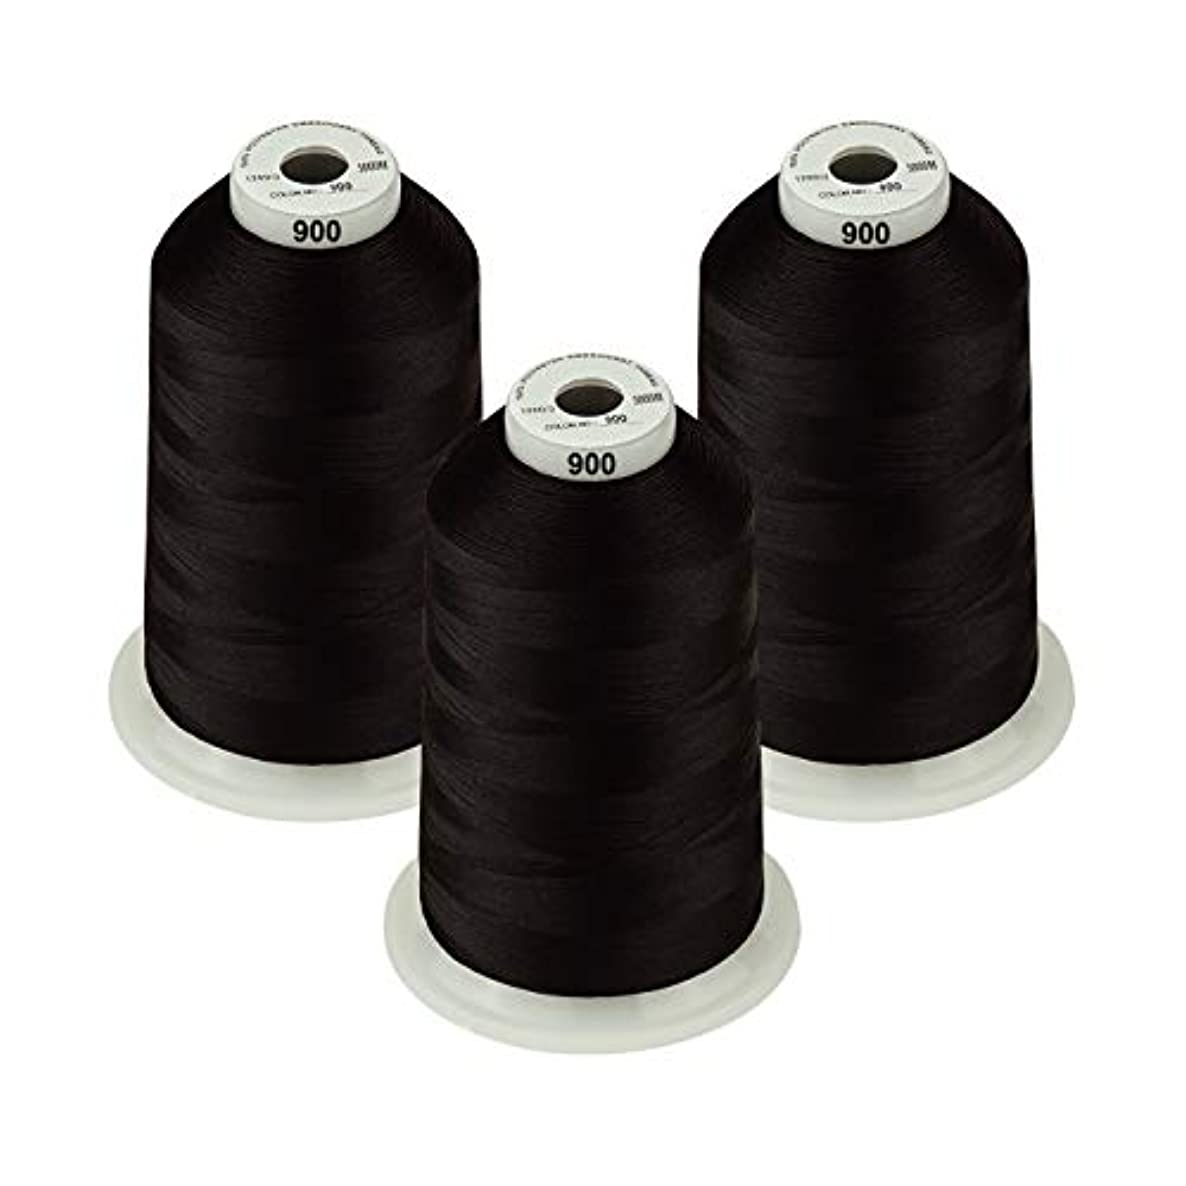 Simthread - 26 Selections - Various Assorted Color Packs of Polyester Embroidery Machine Thread Huge Spool 5500Y for Sewing Embroidery Machines - Black